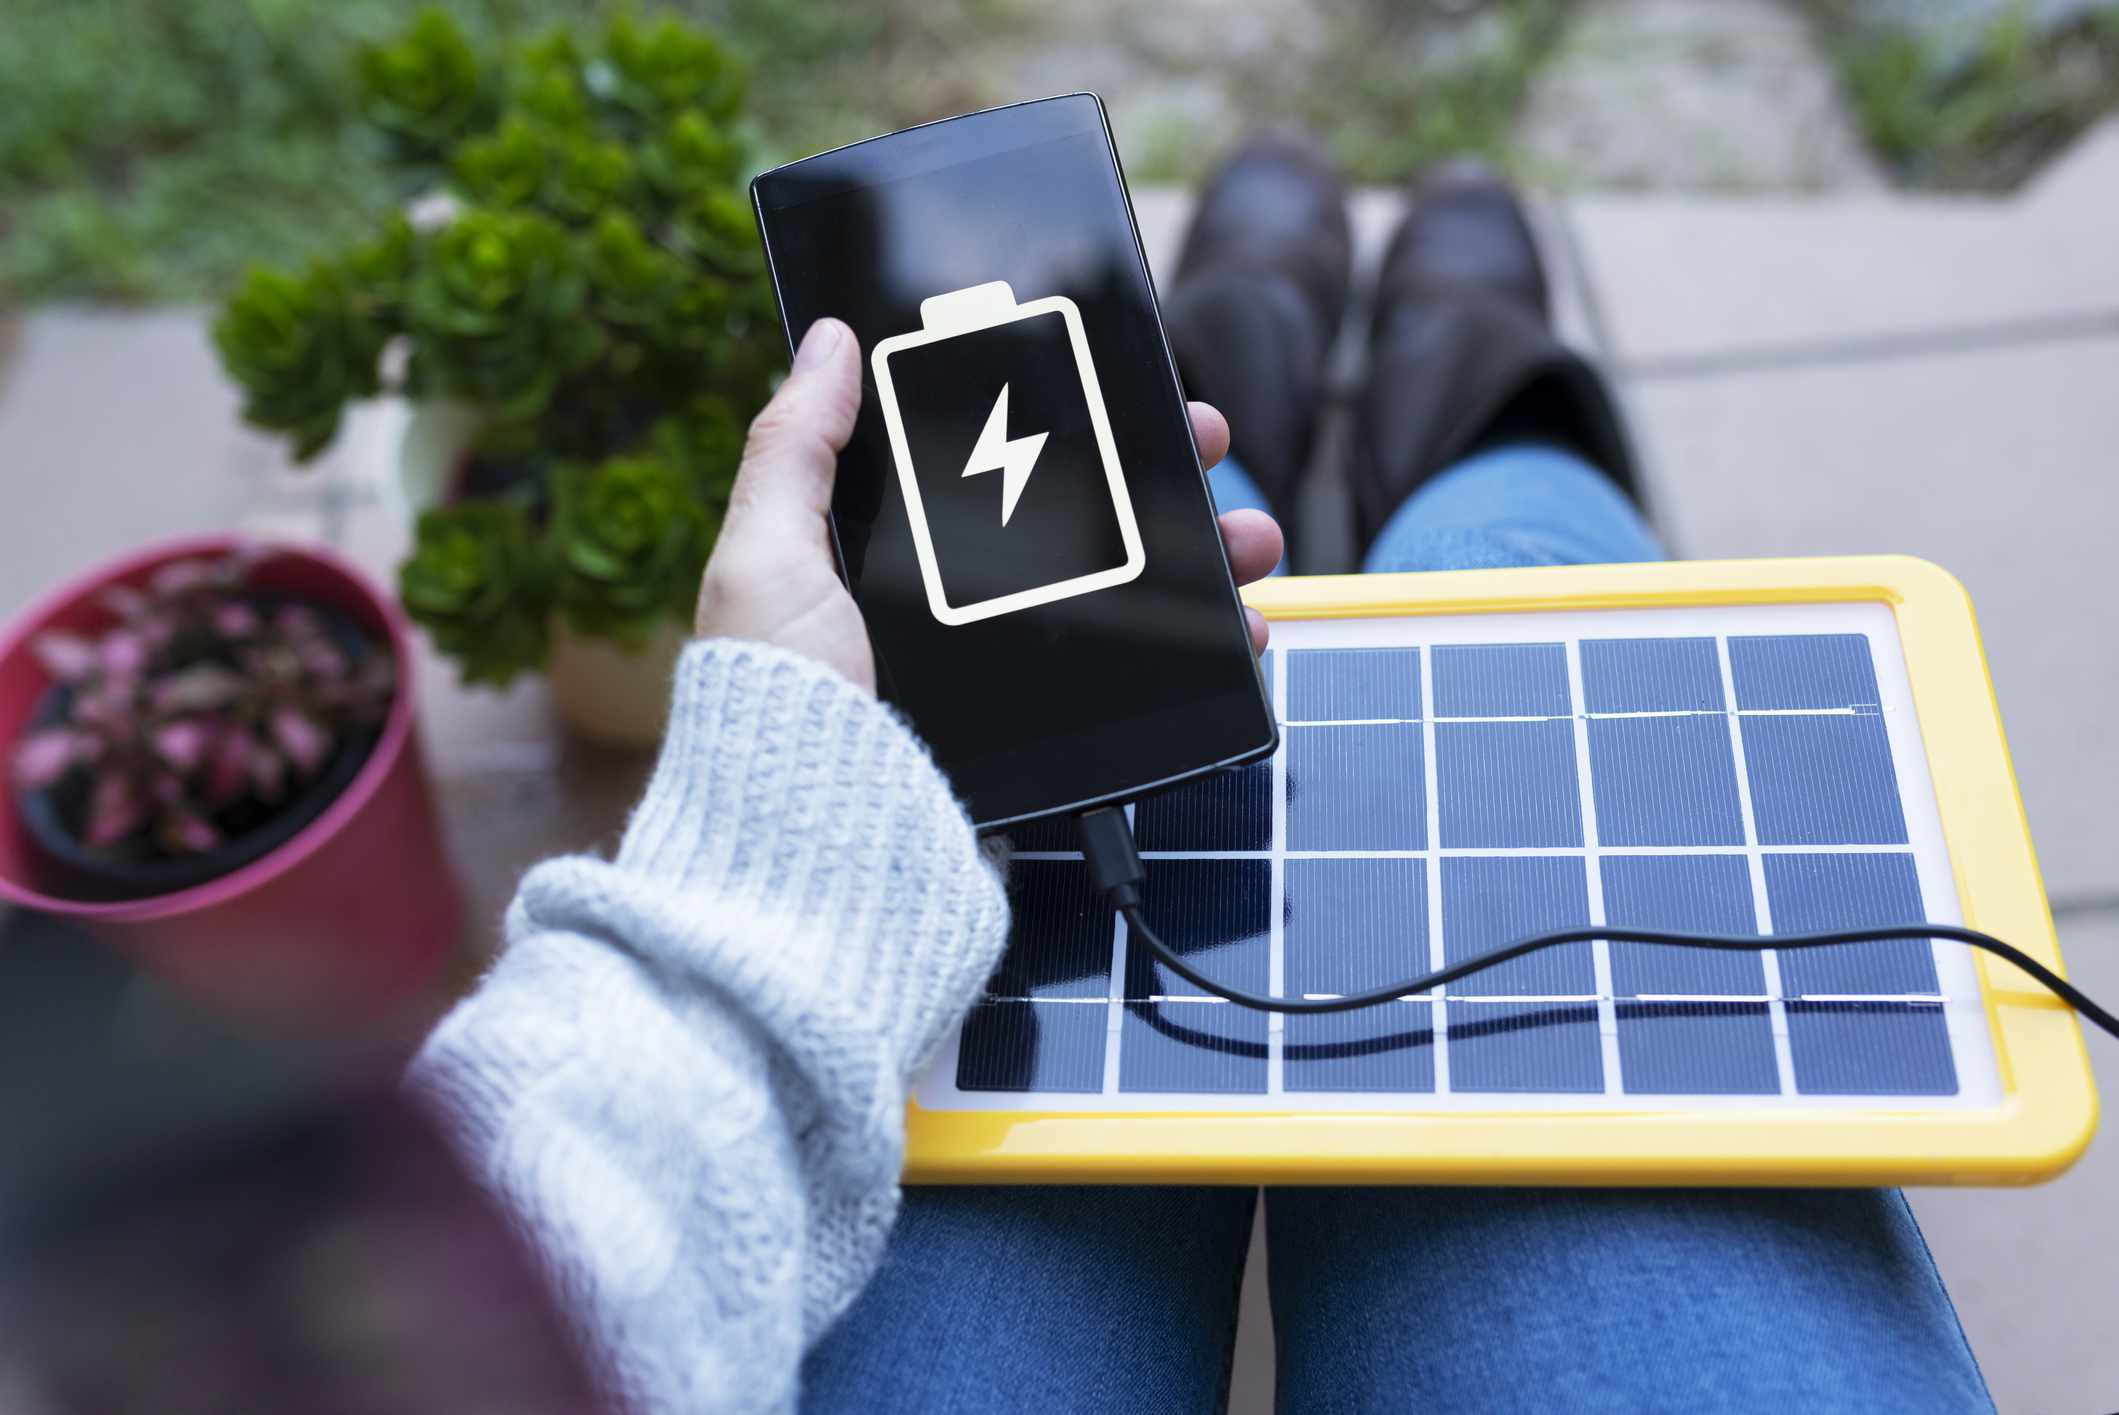 A tablet-sized portable solar device powers a smartphone.